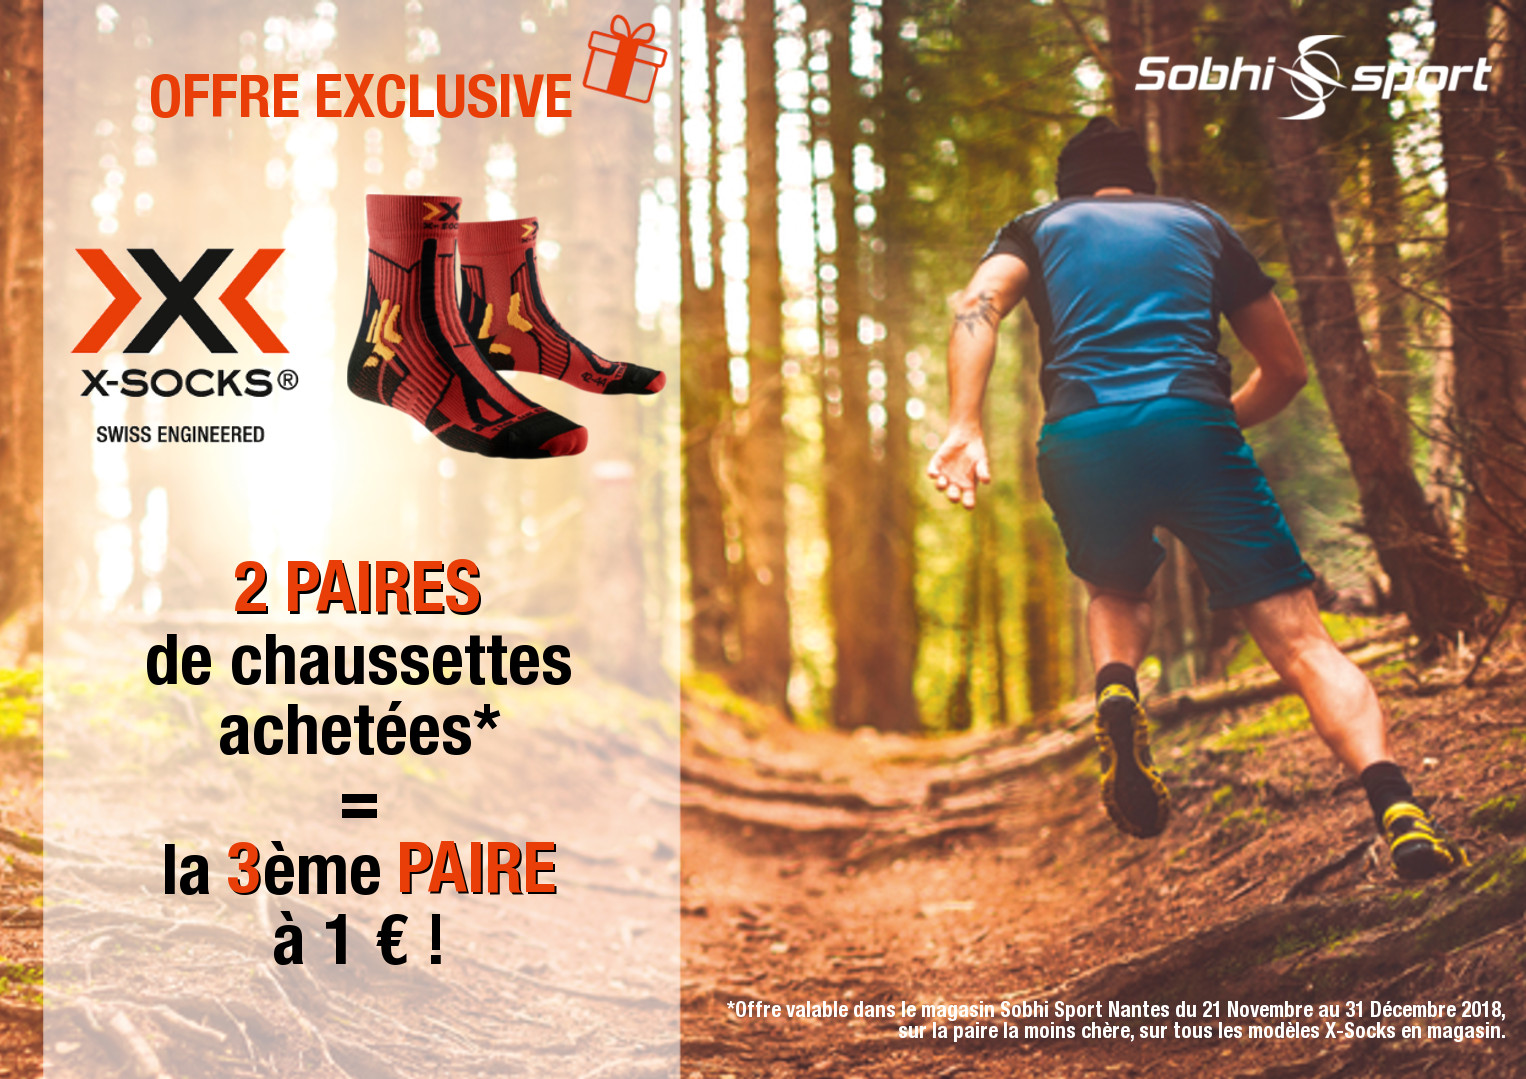 Offre exclusive chaussettes running X-SOCKS !